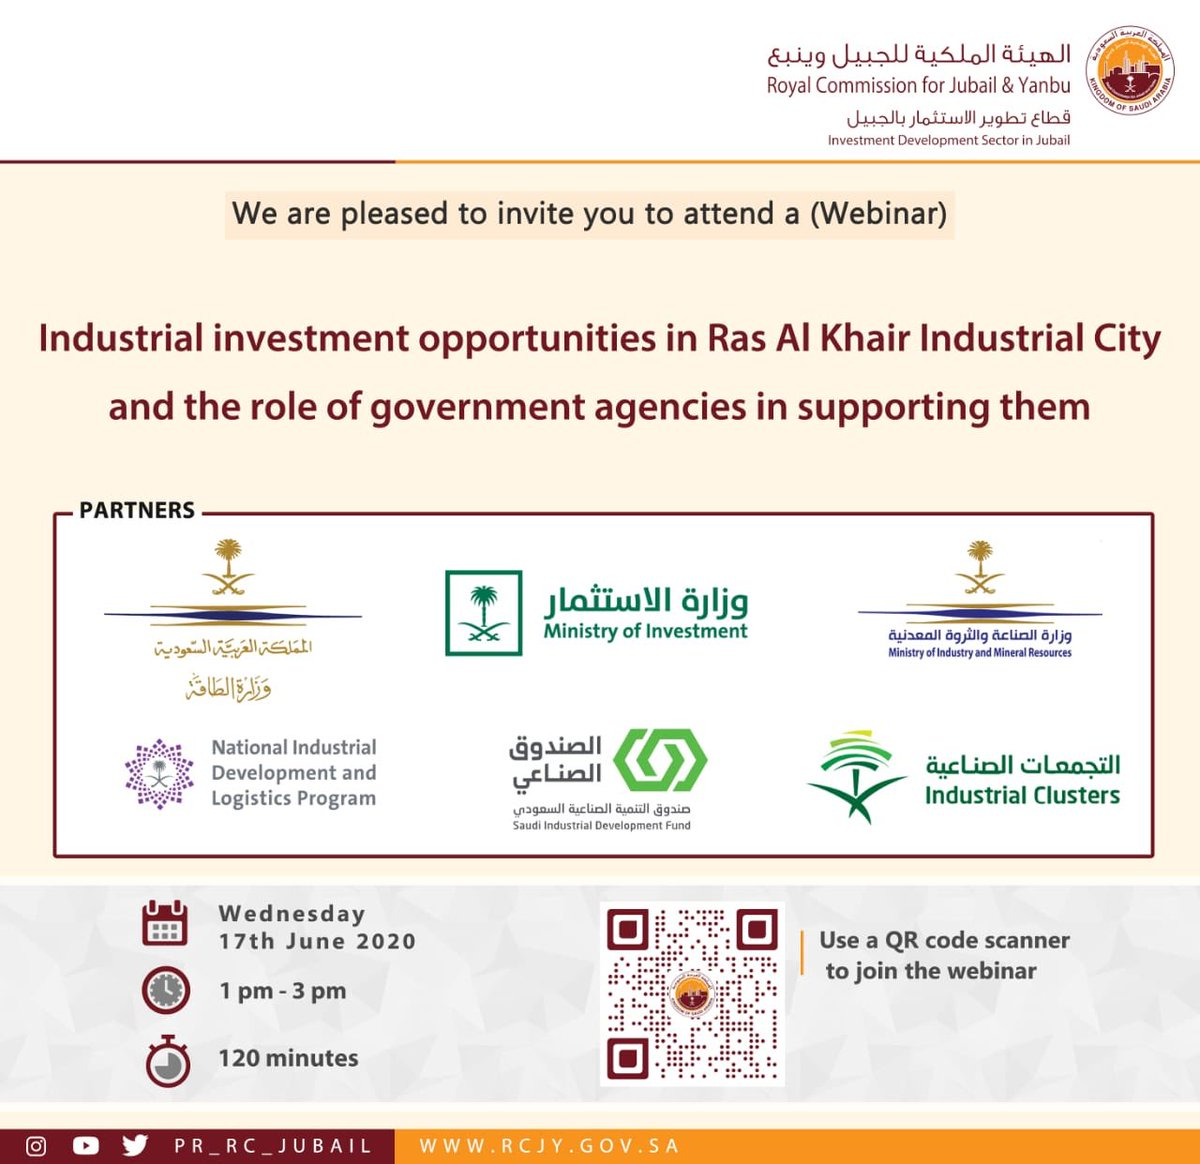 The Royal Commission in Jubail is pleased to invite you to attend the digital webinar to review the industrial investment opportunities in Ras Al-Khair Industrial City and the role of government agencies in supporting them, next Wednesday at 1 pm-3 pm https://t.co/jd6YiR3Vzi